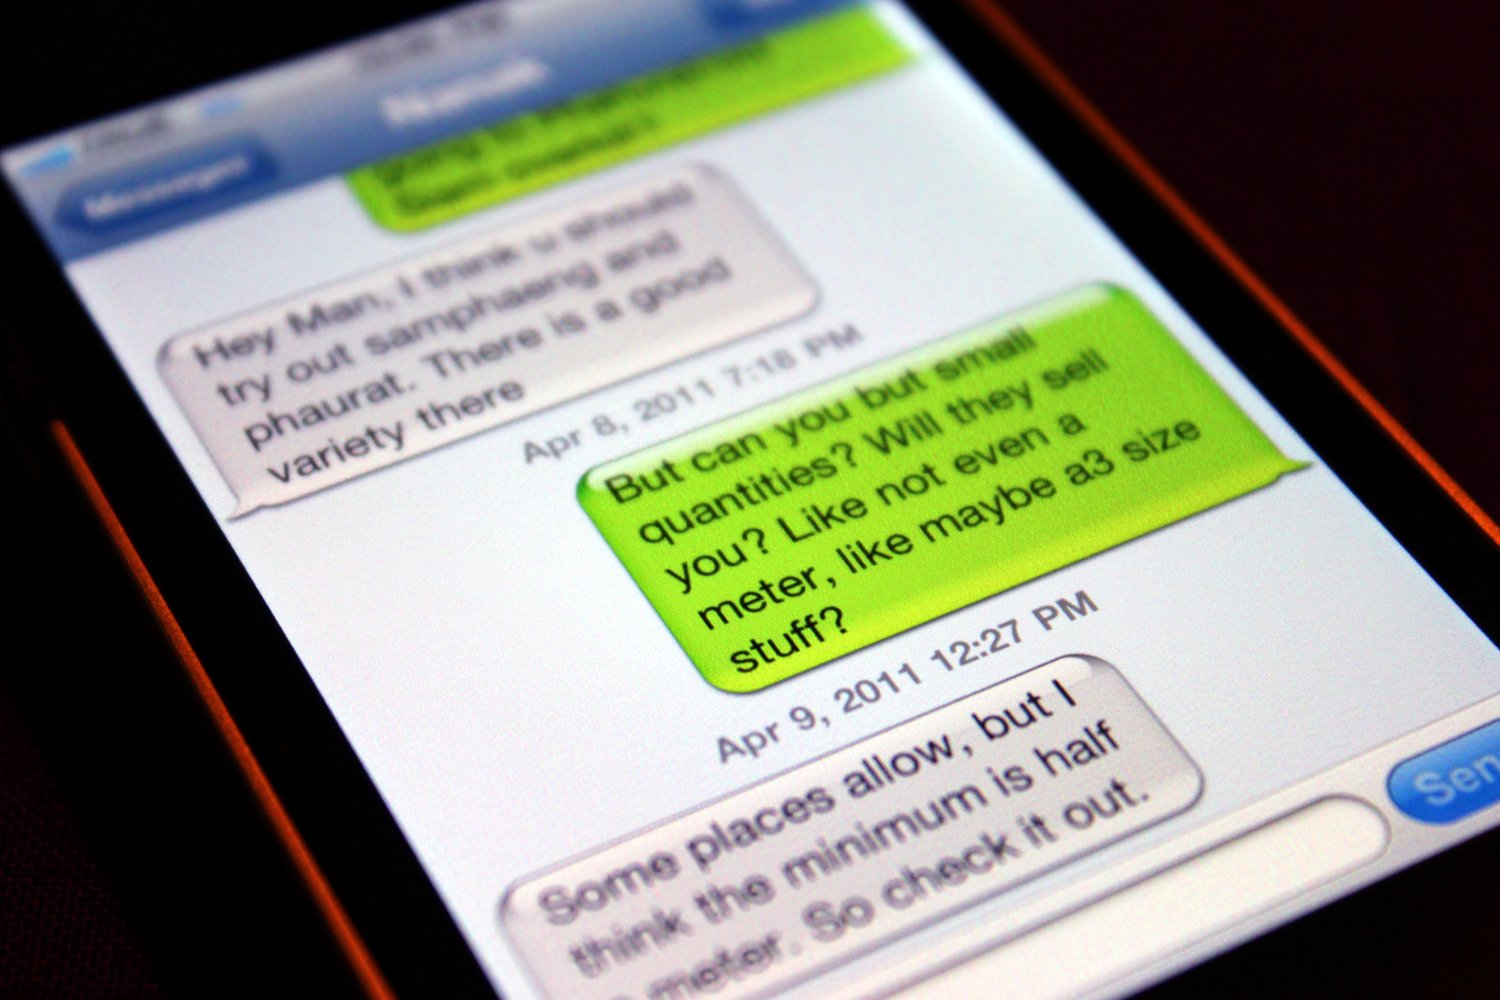 How to Secretly Track Text Messages on iPhone